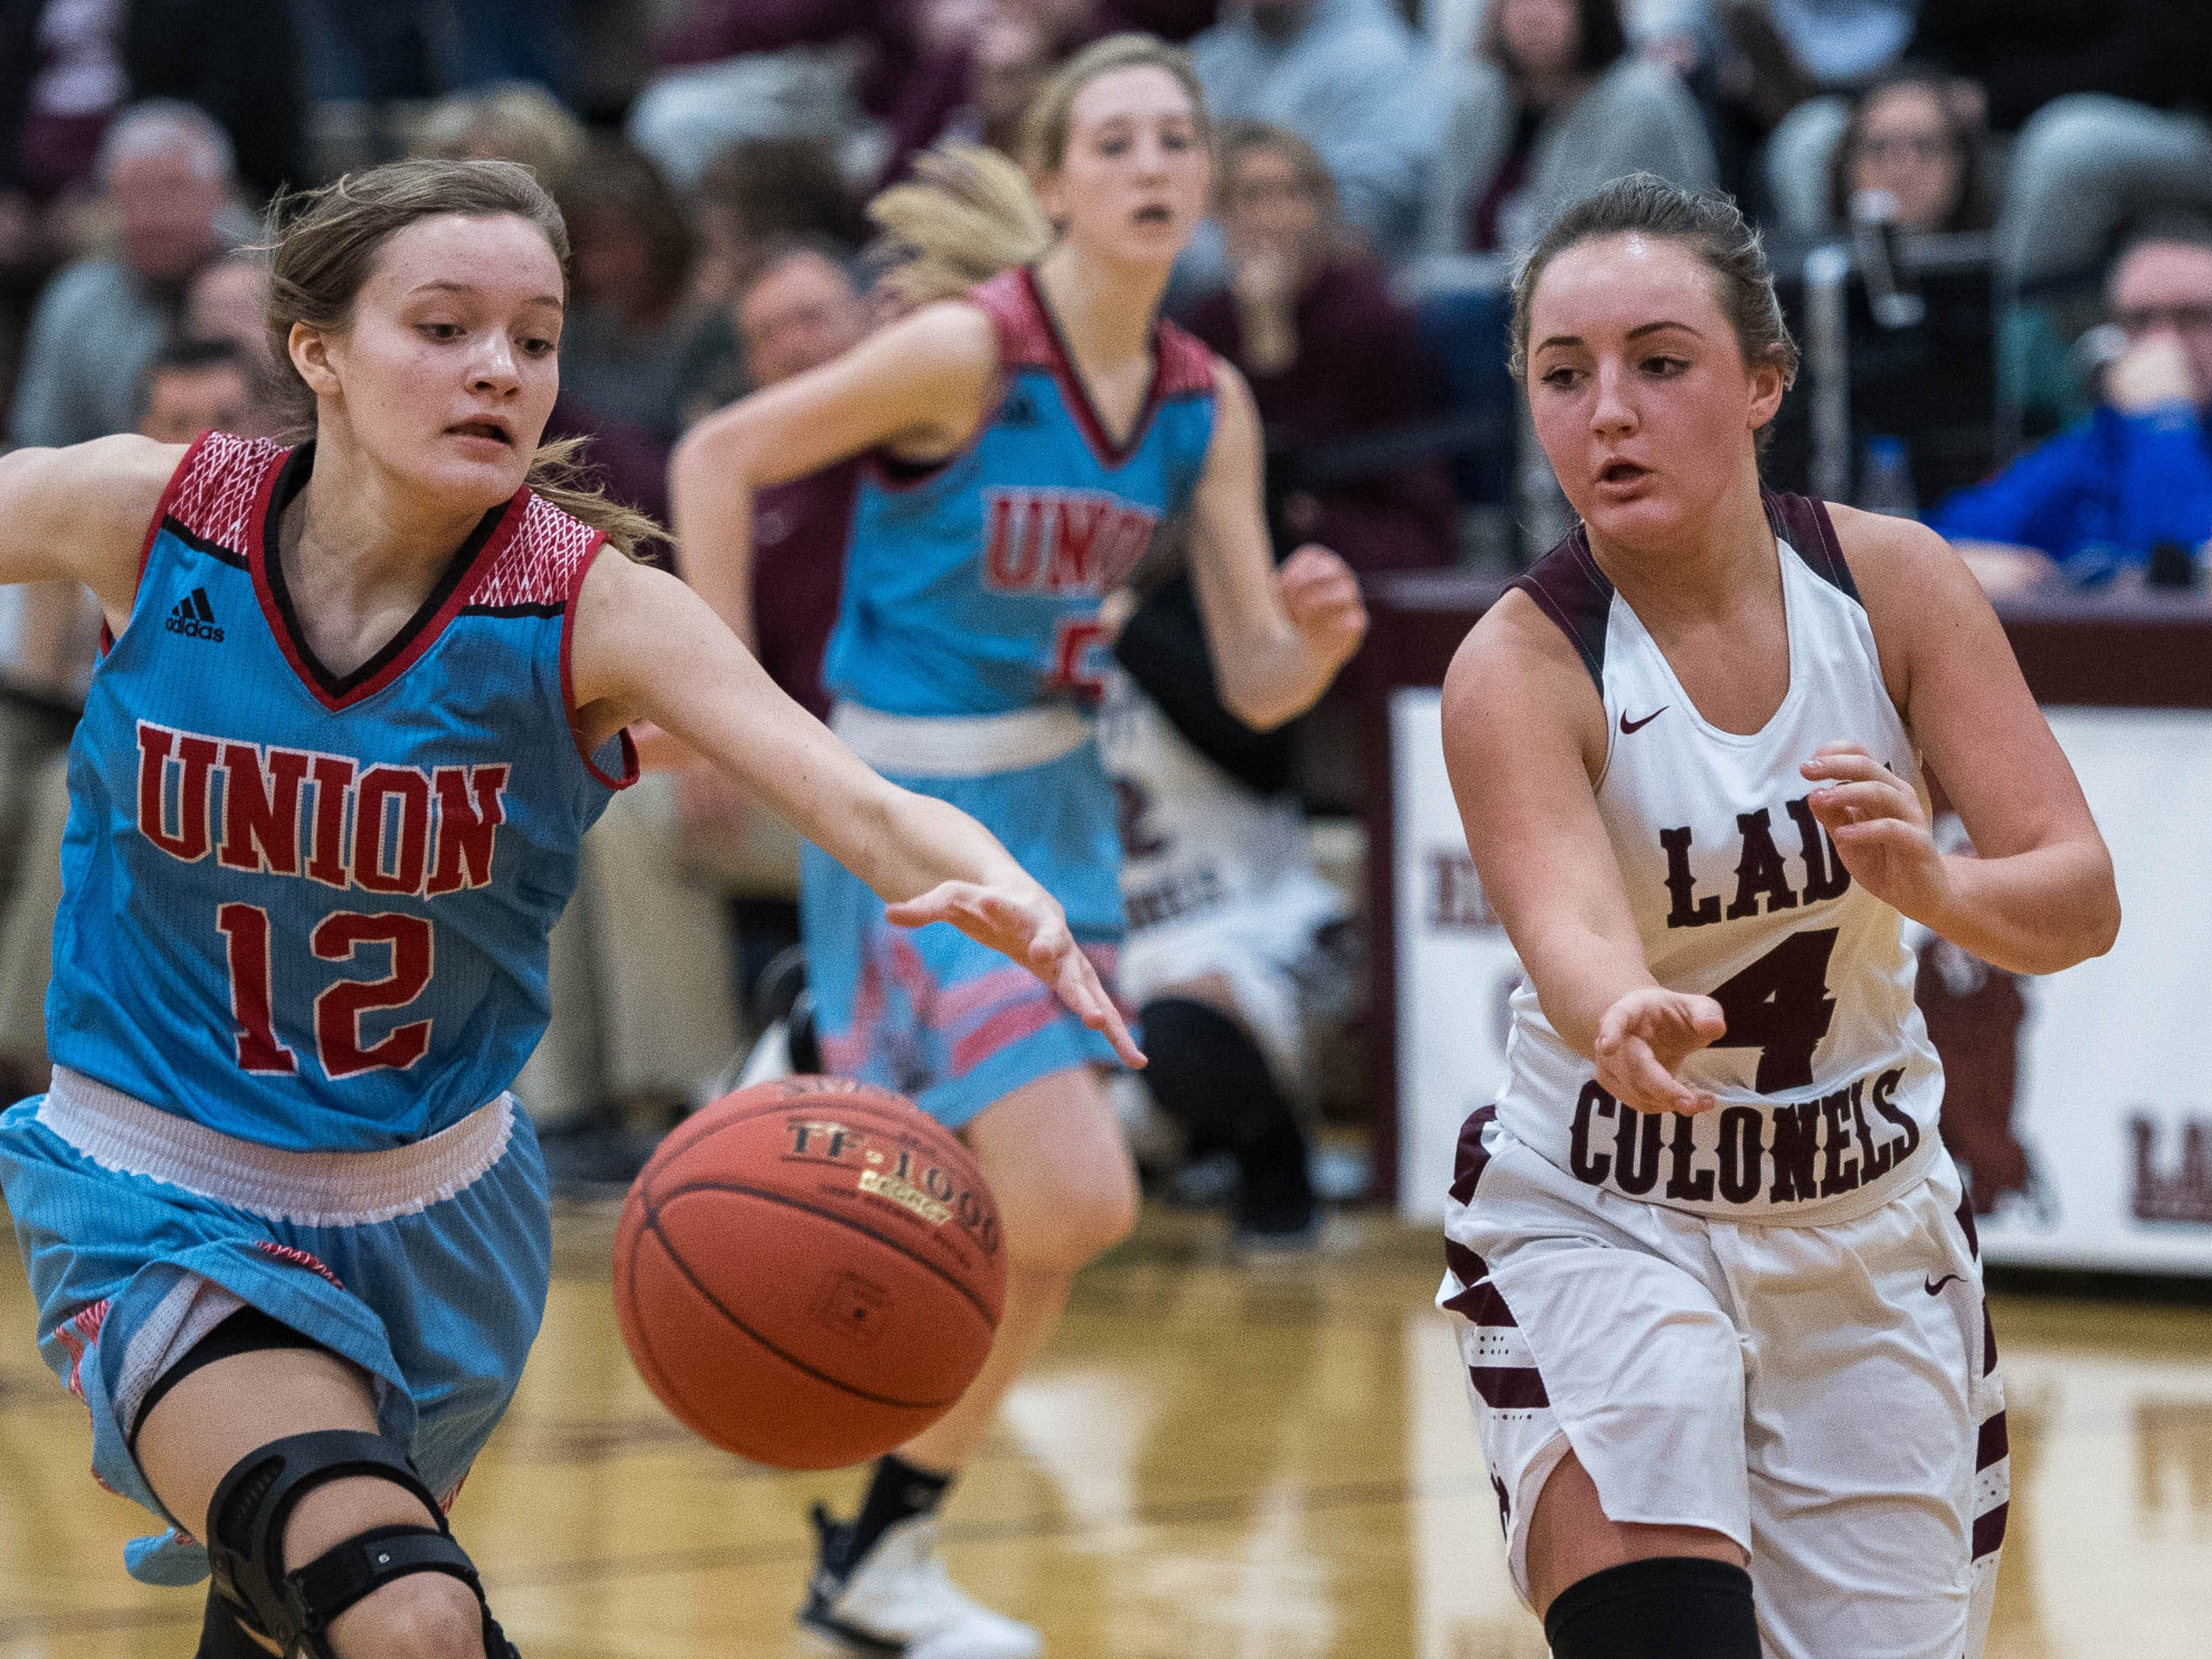 Raelle Beaven (12)  and Henderson County's Savannah Lacer (4) chase a loose ball as district rivals Union County Bravettes play the Henderson County Lady Colonels at Colonel Gym in Henderson Tuesday, January 29, 2019.